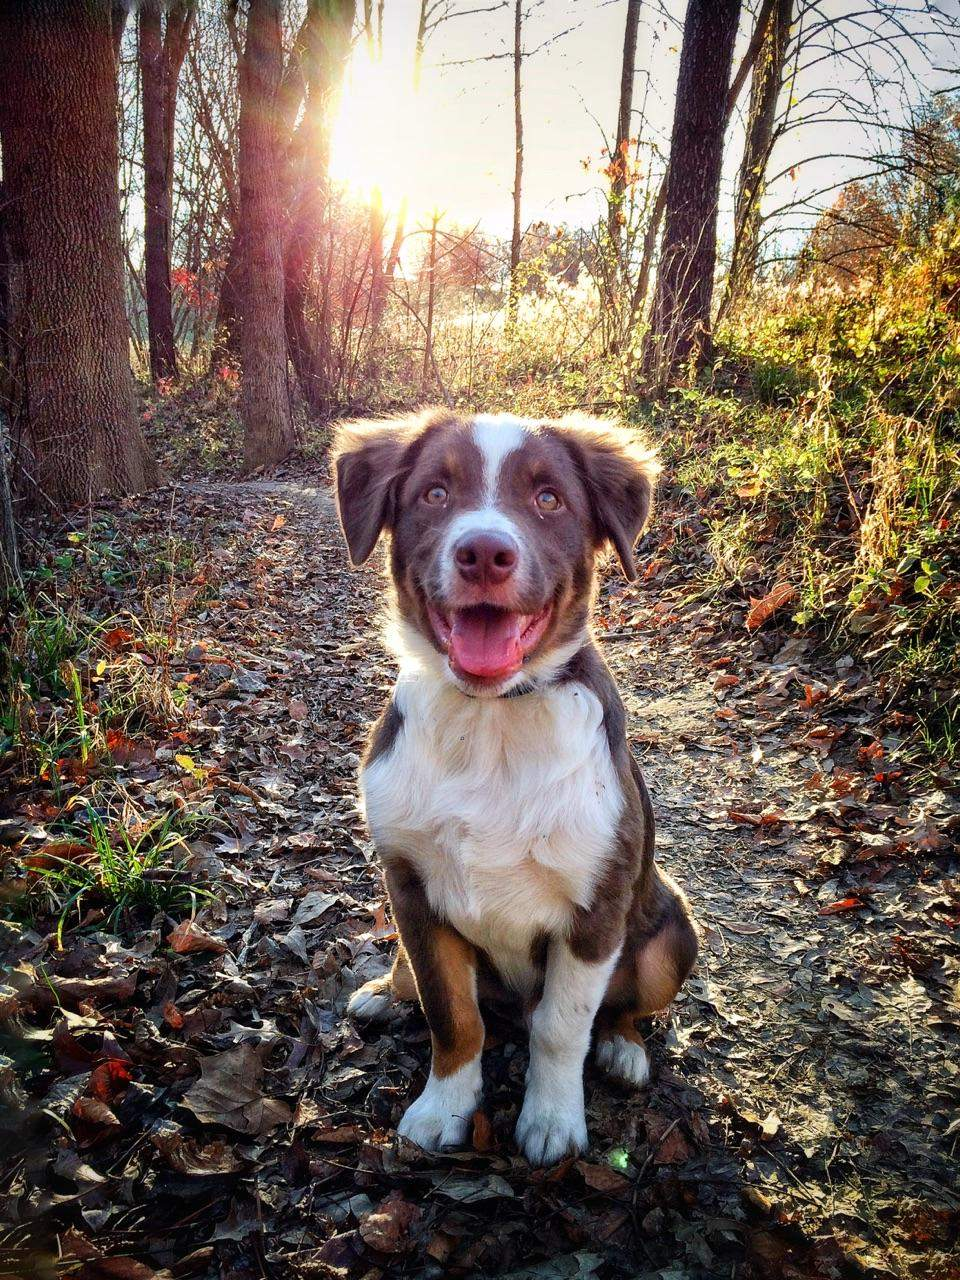 Cute dogs - part 159, cute dog photos, best dog images